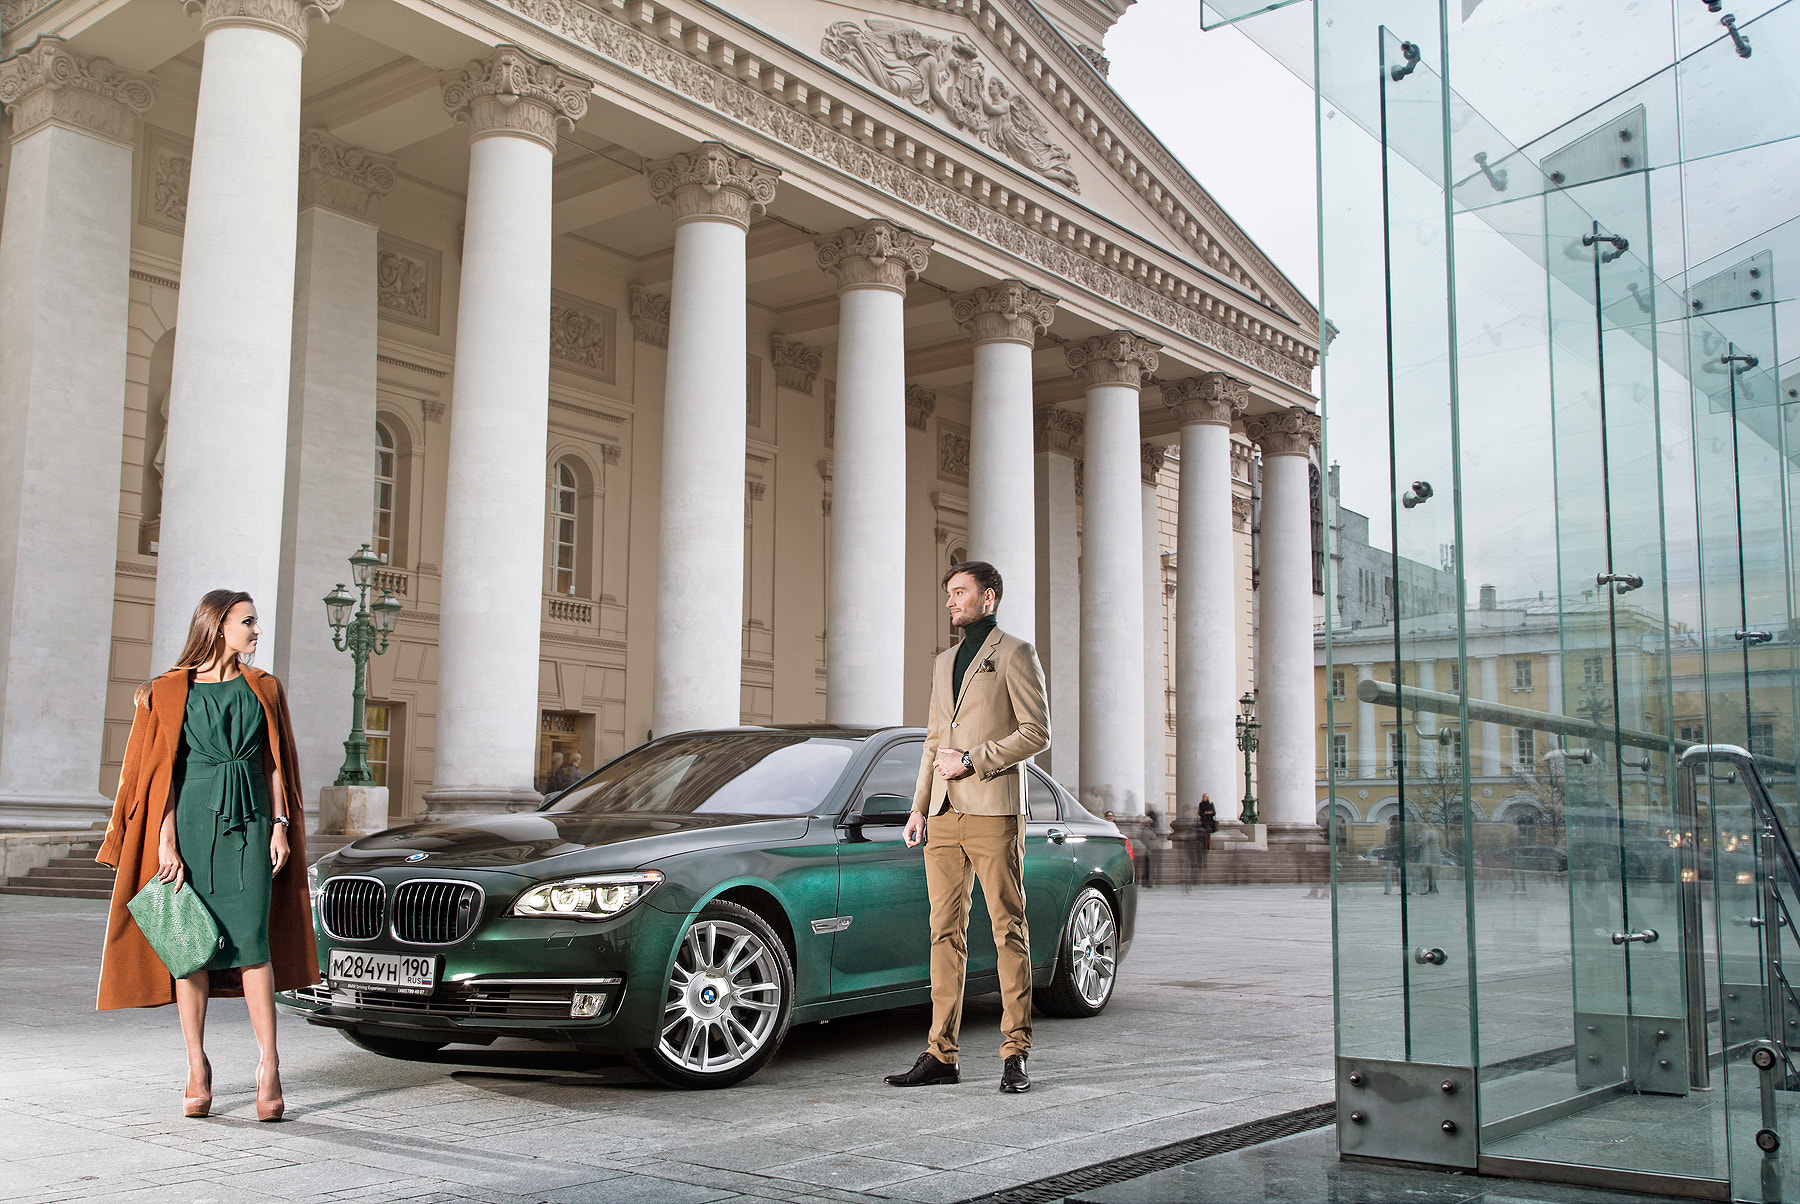 Photograph BMW 7-Series nearby The Bolshoi Theatre. by Alexey Sulima on 500px